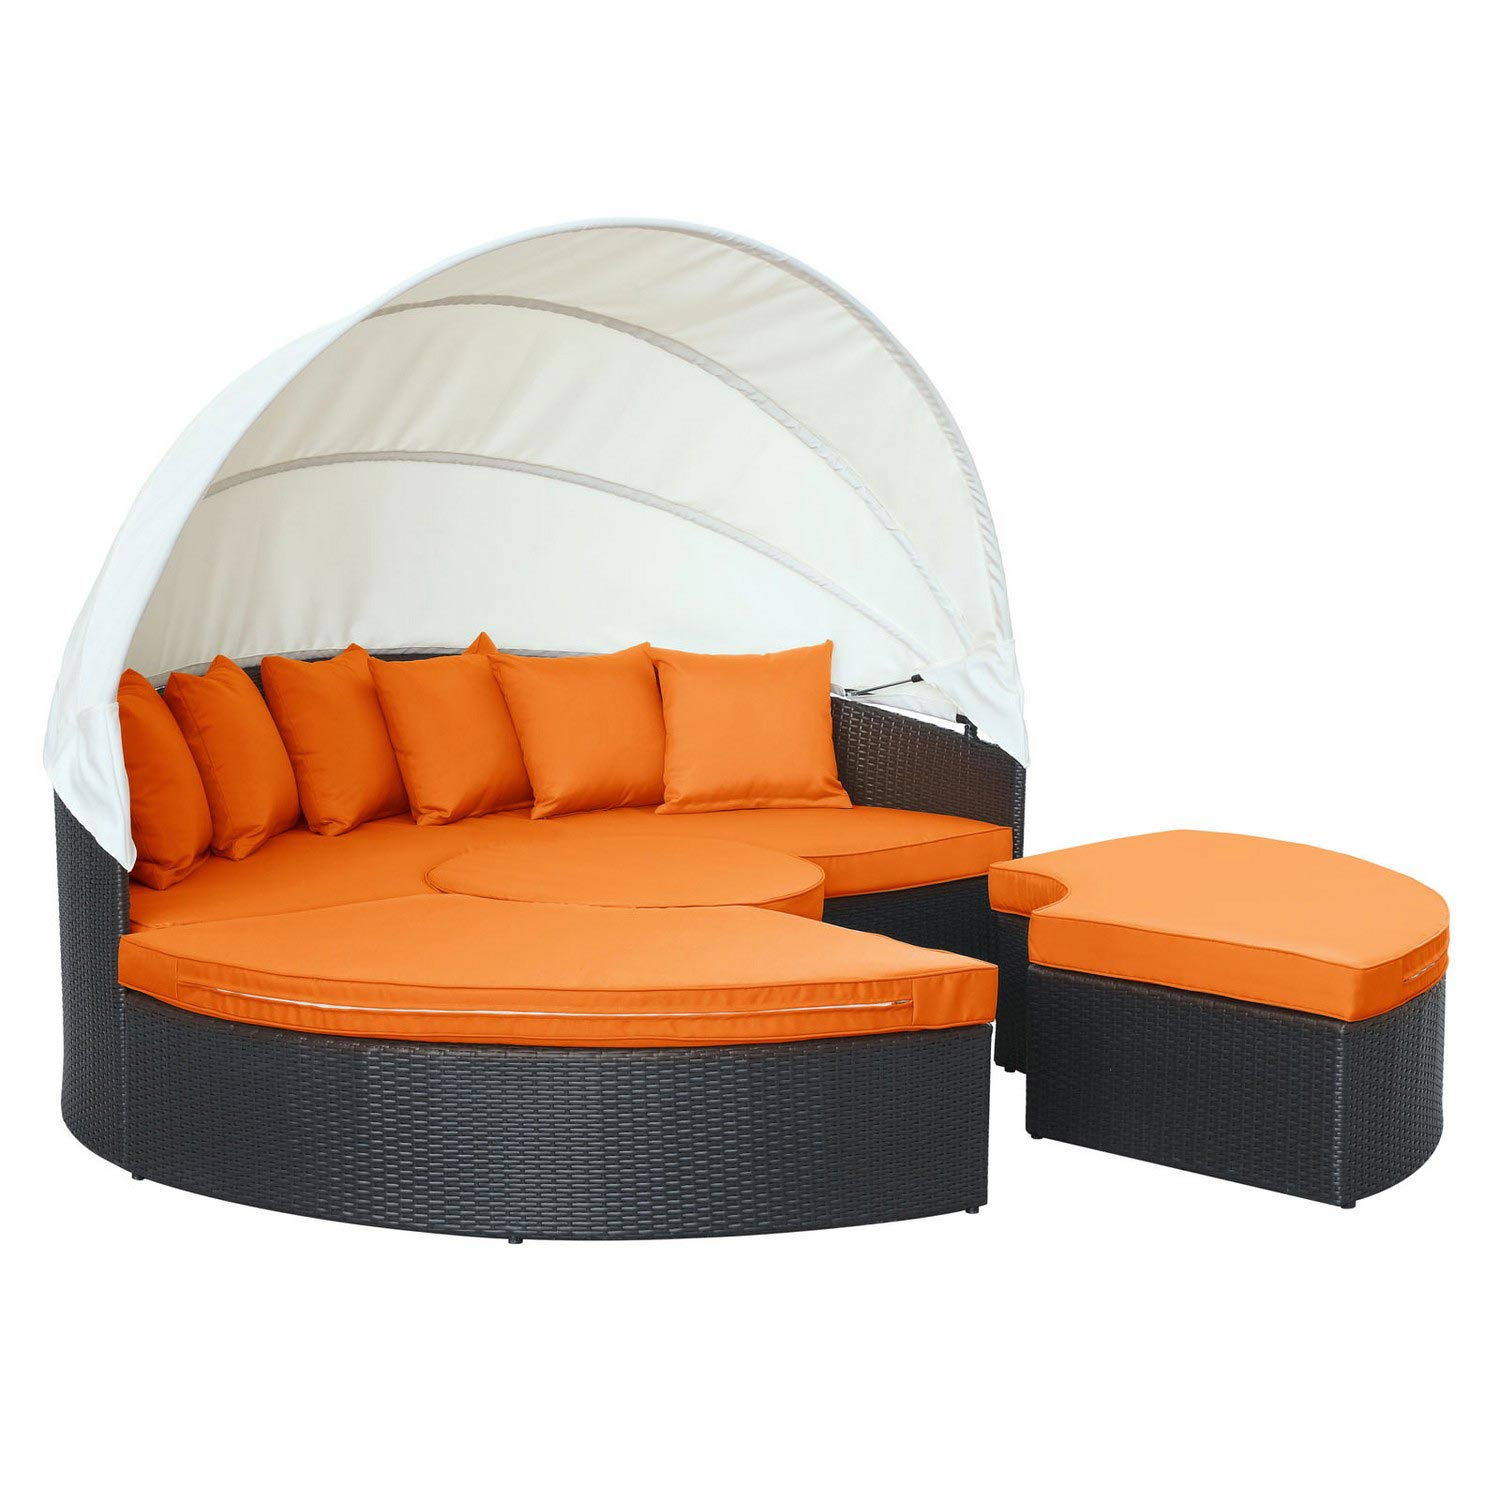 Modway Convene Canopy Outdoor Patio Daybed - Espresso/Orange